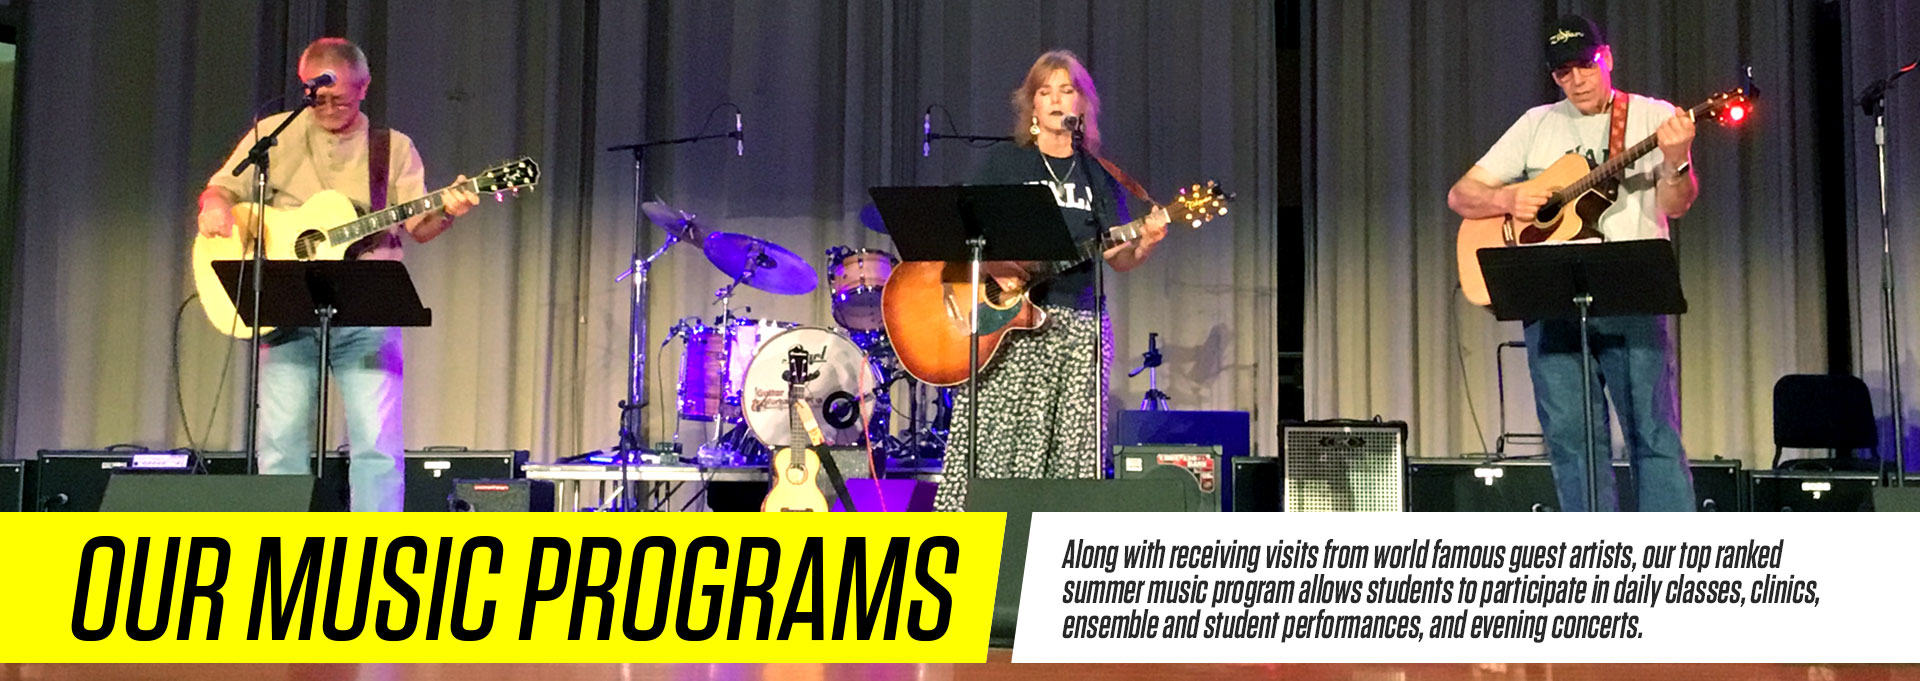 GWP-Our-Music-Programs-Slide-2020